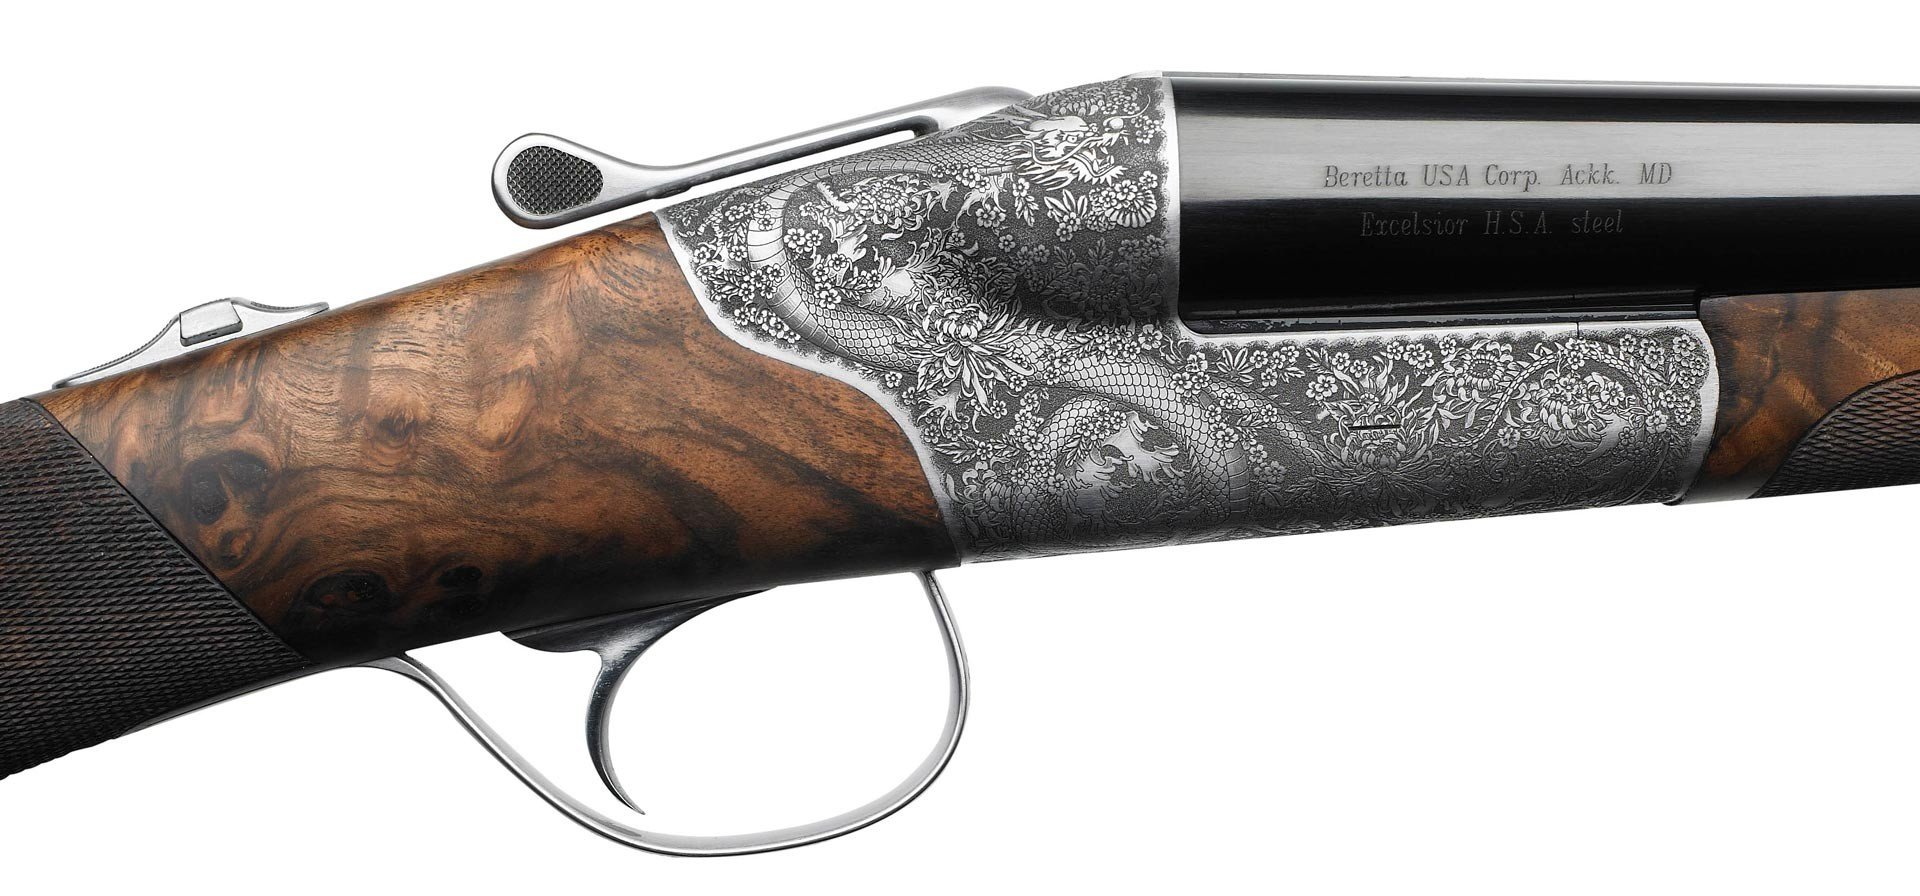 Beretta 486 by marc newson